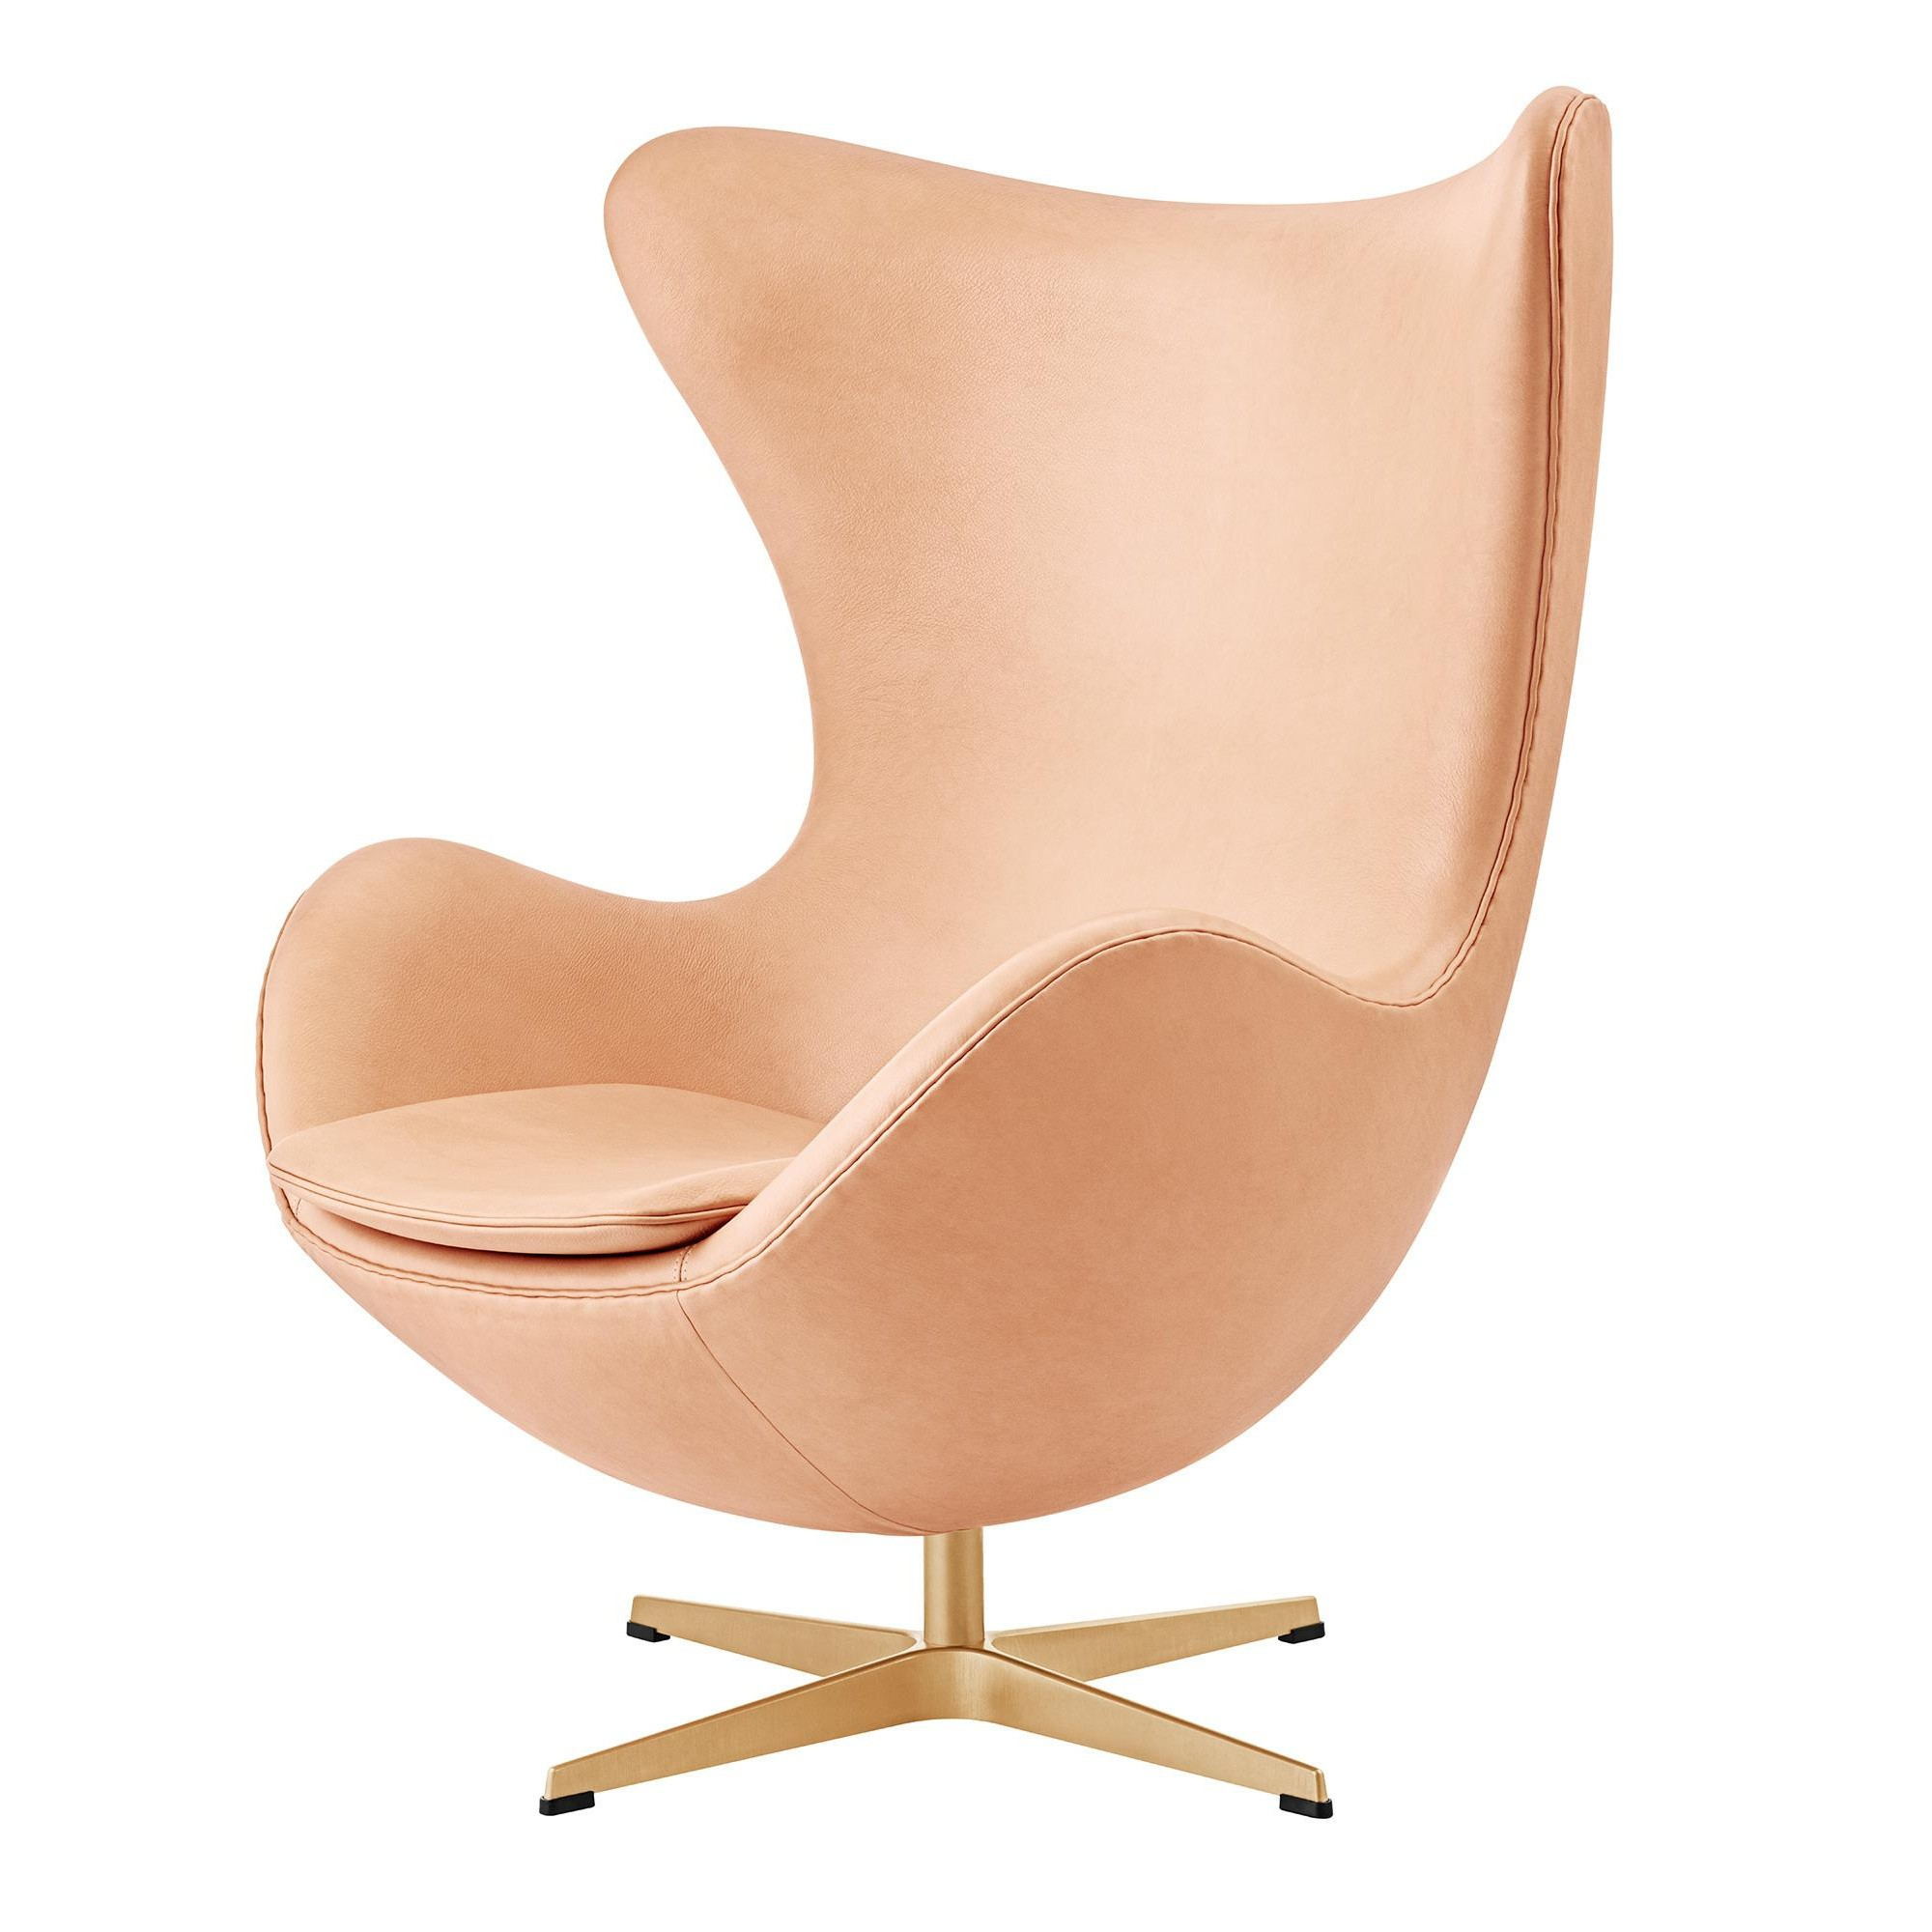 Egg Lounge Sessel Anniversary Edition Egg Chair Lounge Chair